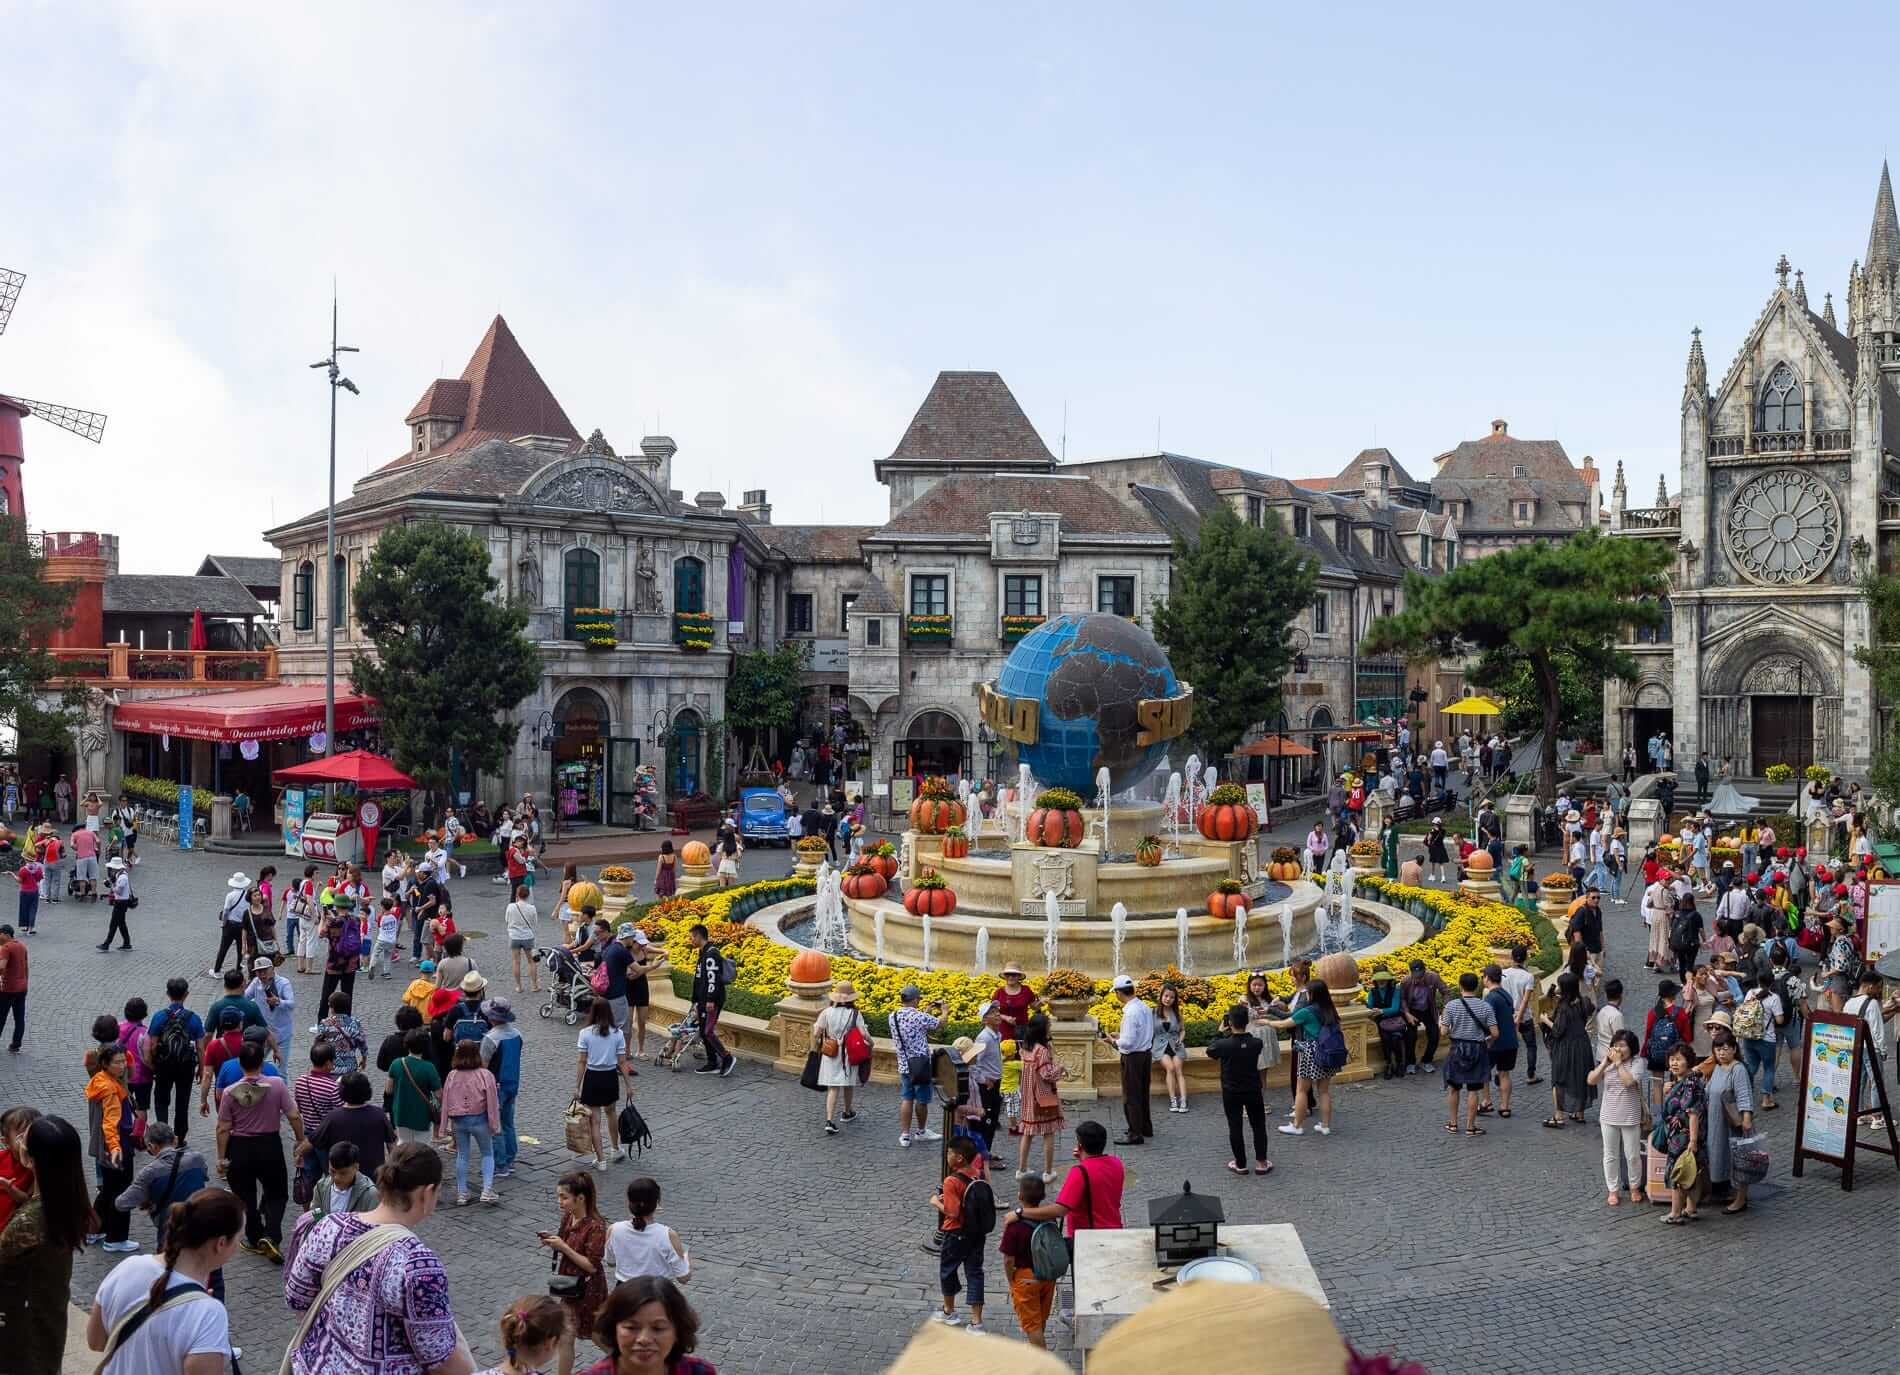 Ba Na Hills park with thousands of tourists visiting